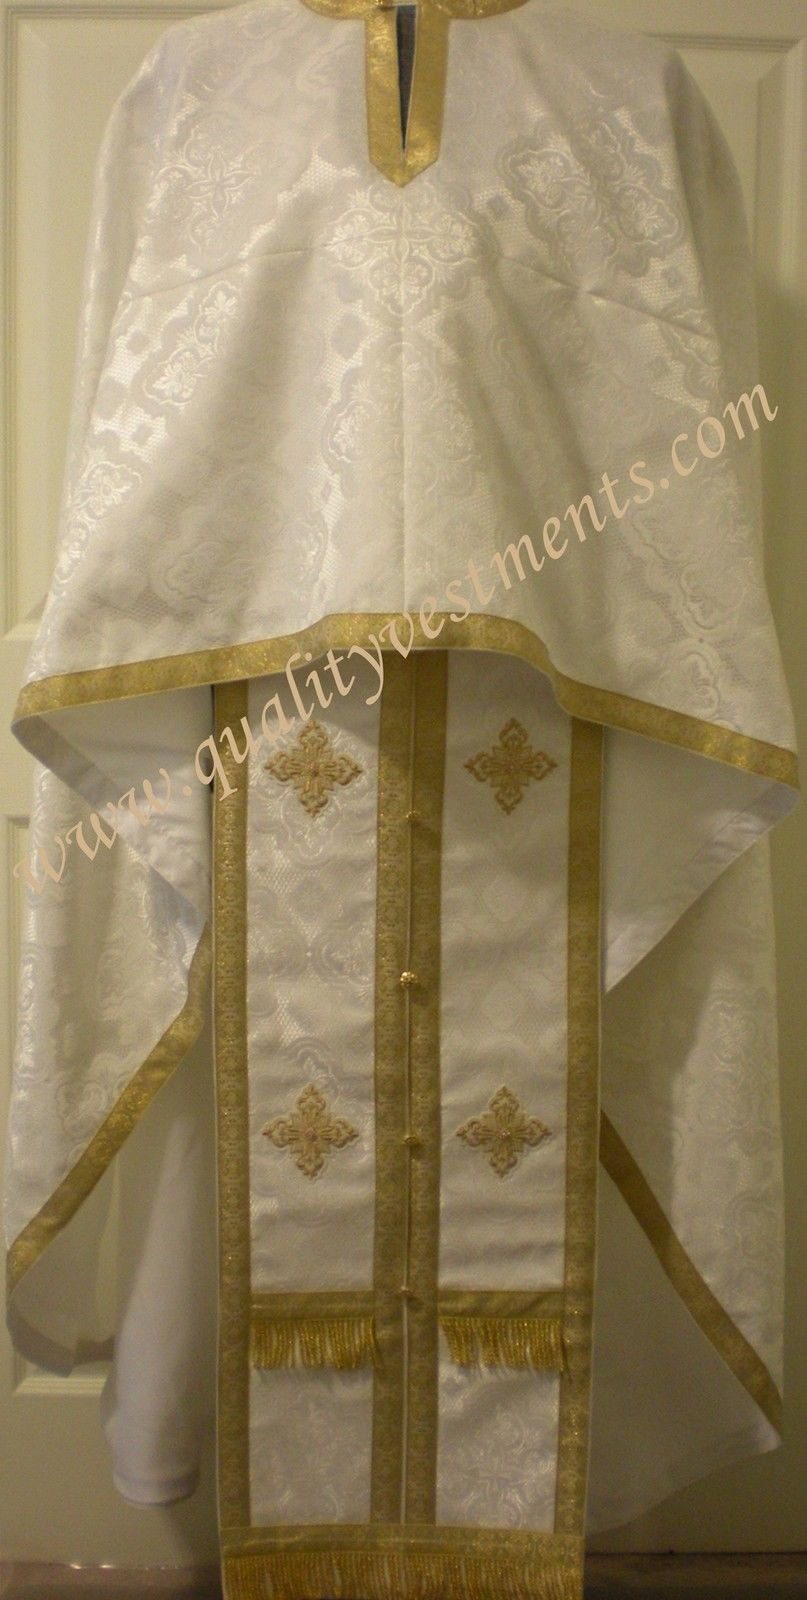 Priest Orthodox Greek style vestment nonmetallic Brocade White with Gold